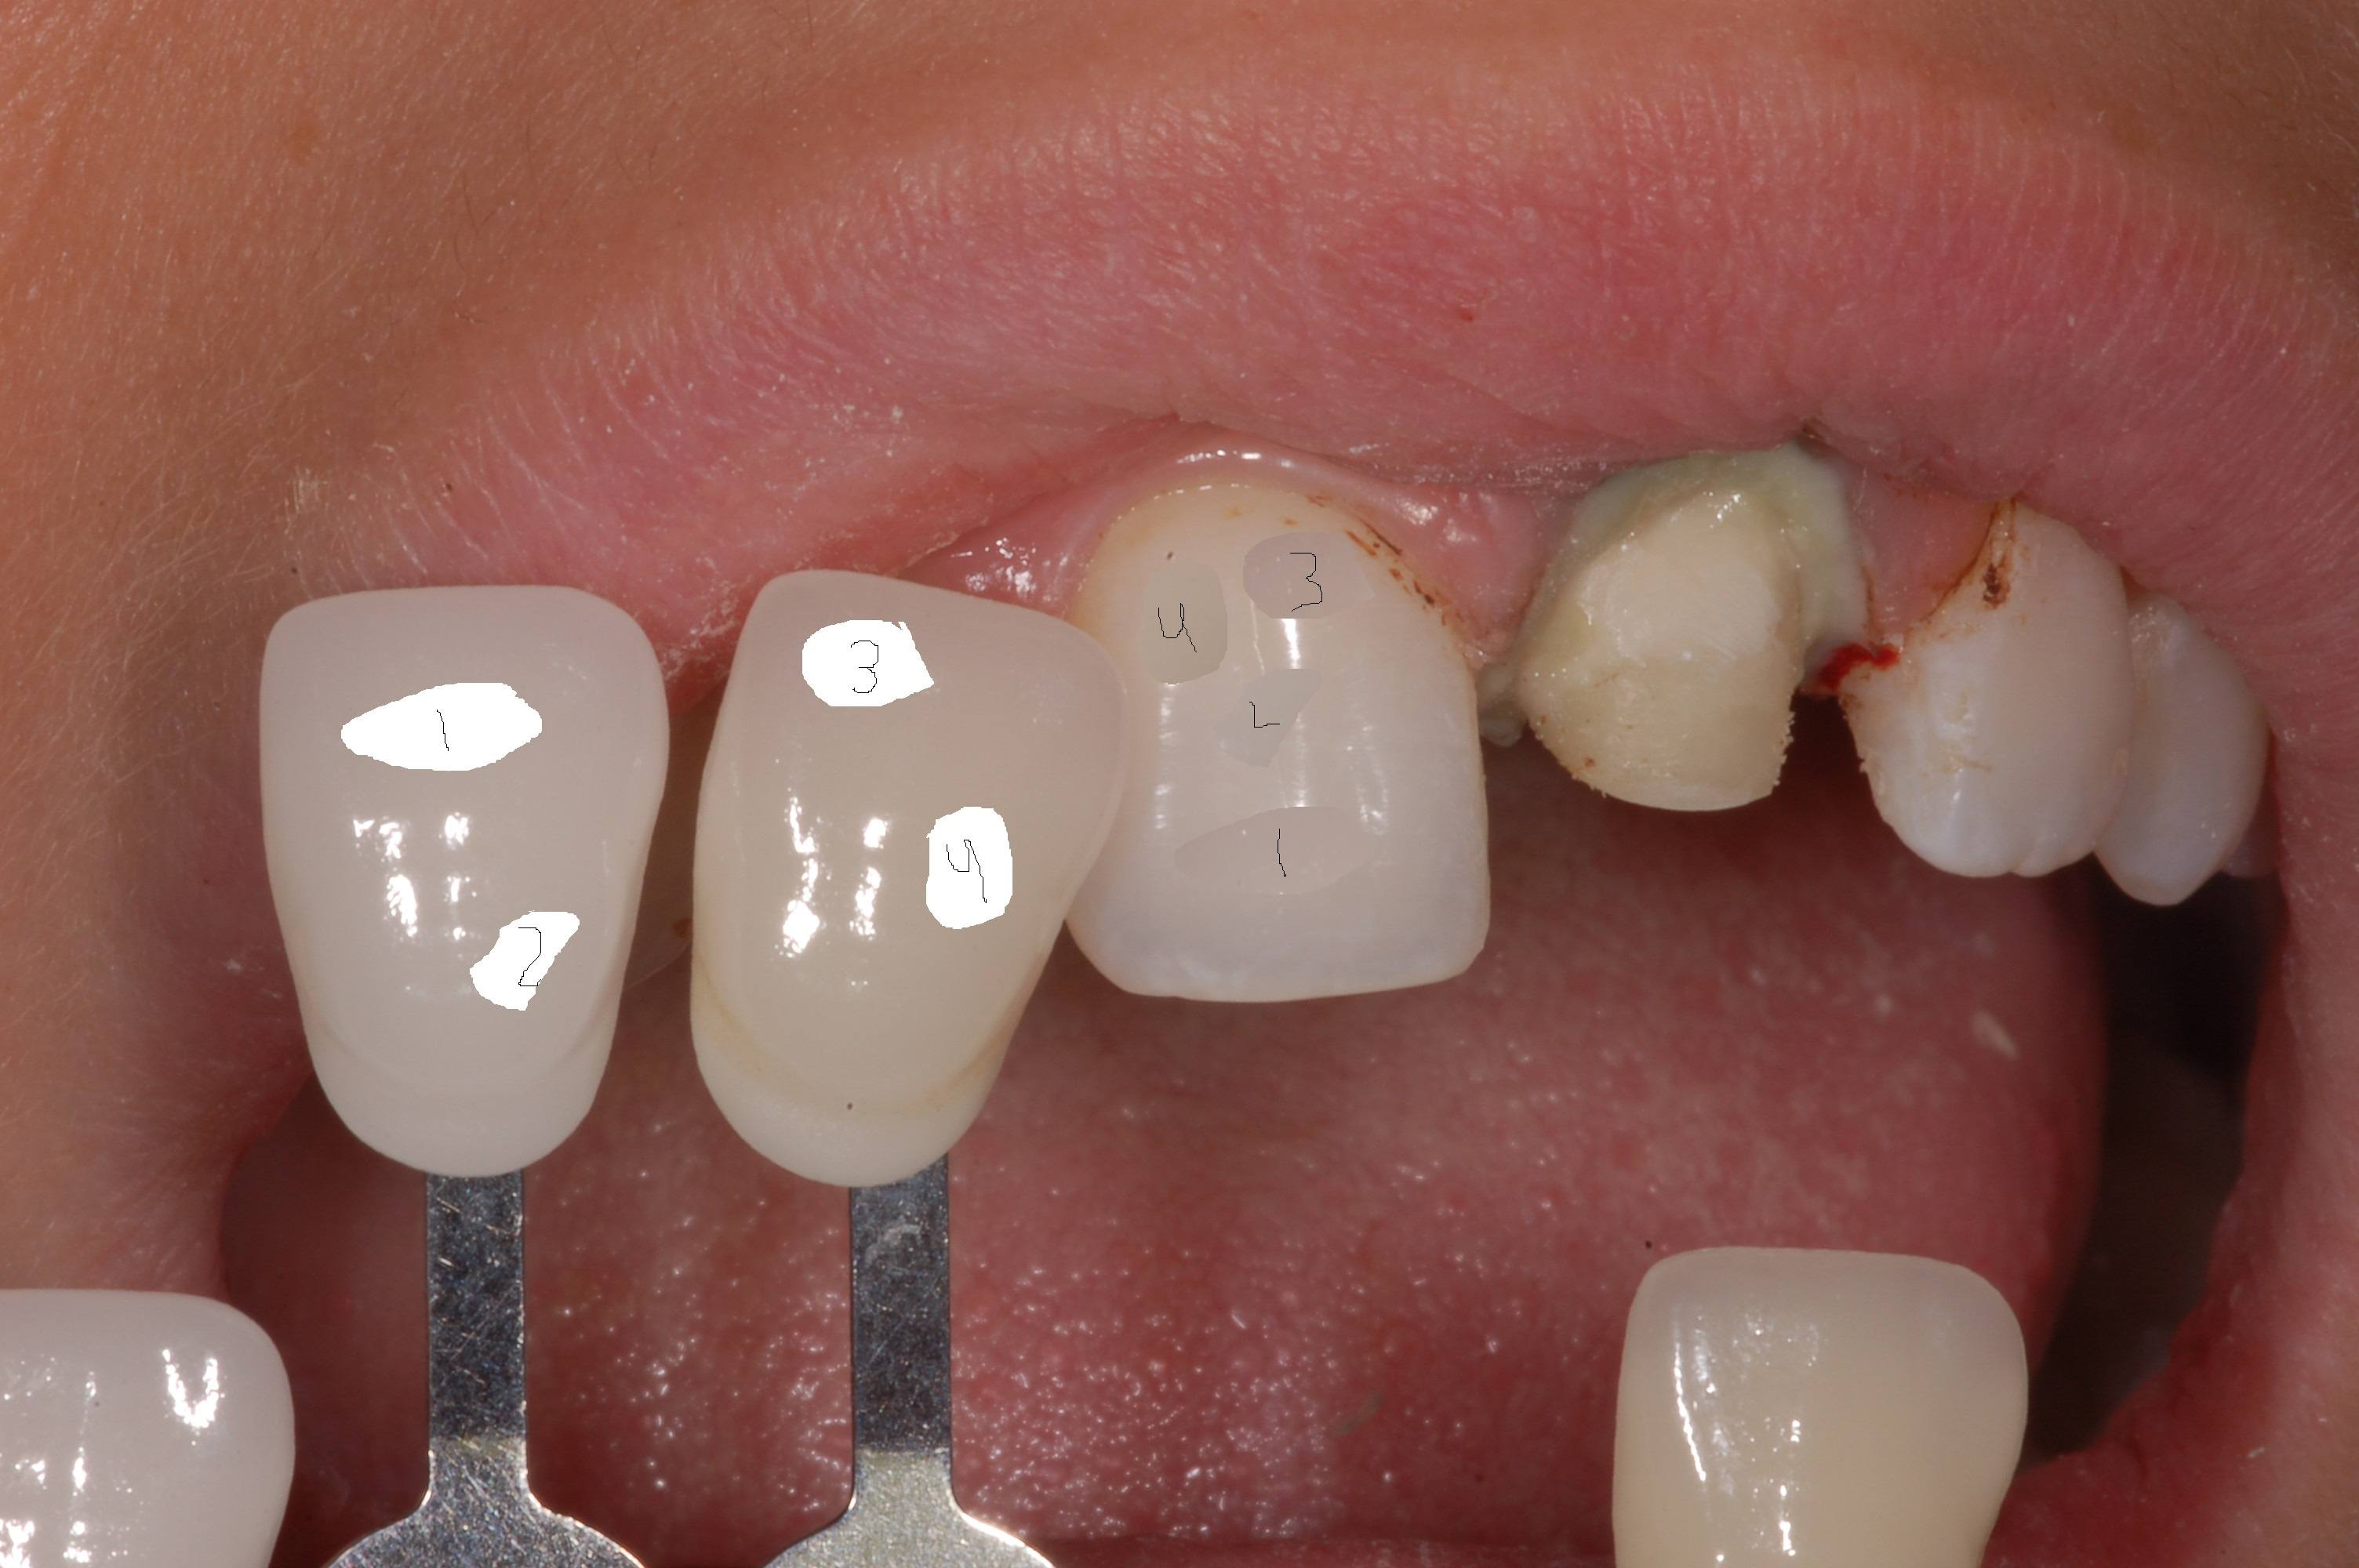 image about Tooth Shade Chart Printable named Dental color decision - How in the direction of choose the immediately colour